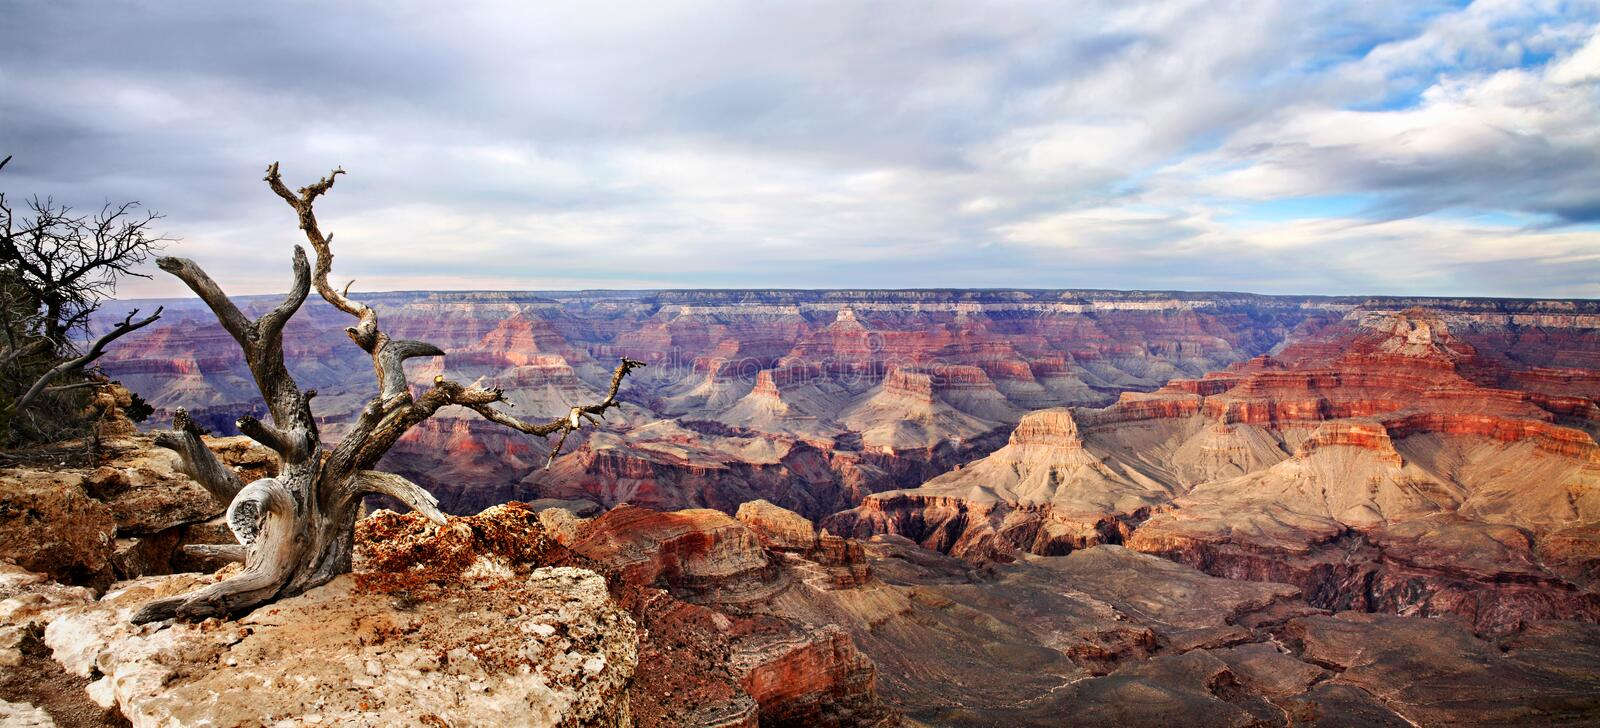 Yaki Point Panorama. A Dead Tree At The Edge, Yaki Point Overlook, South Rim View, Grand Canyon National Park, Arizona, USA royalty free stock images